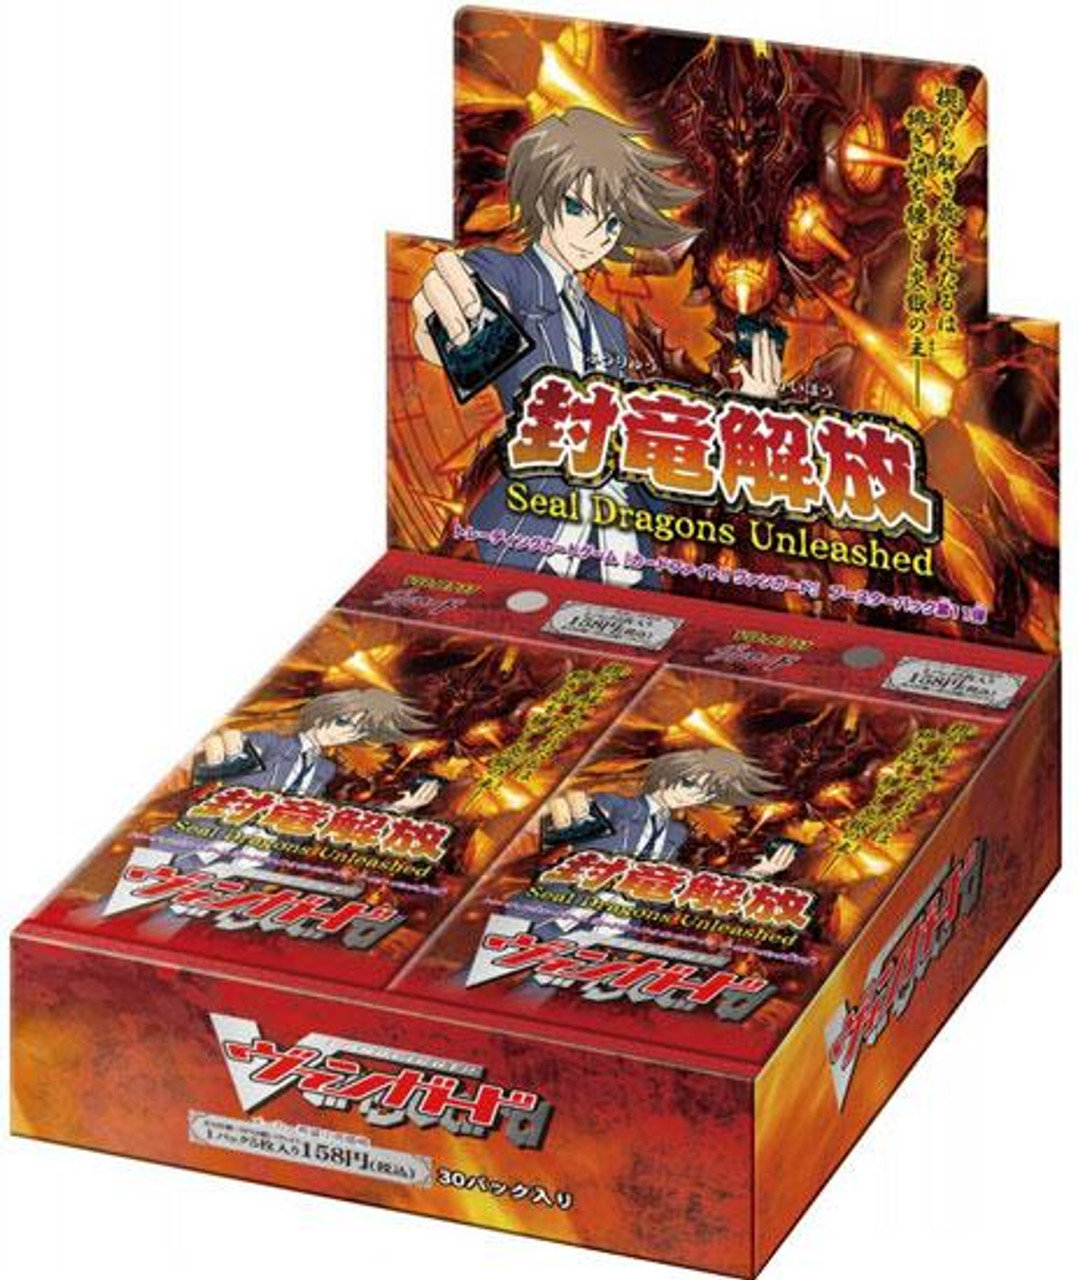 Cardfight Vanguard Seal Dragons Unleashed Booster Box VGE-BT11 [30 Packs]